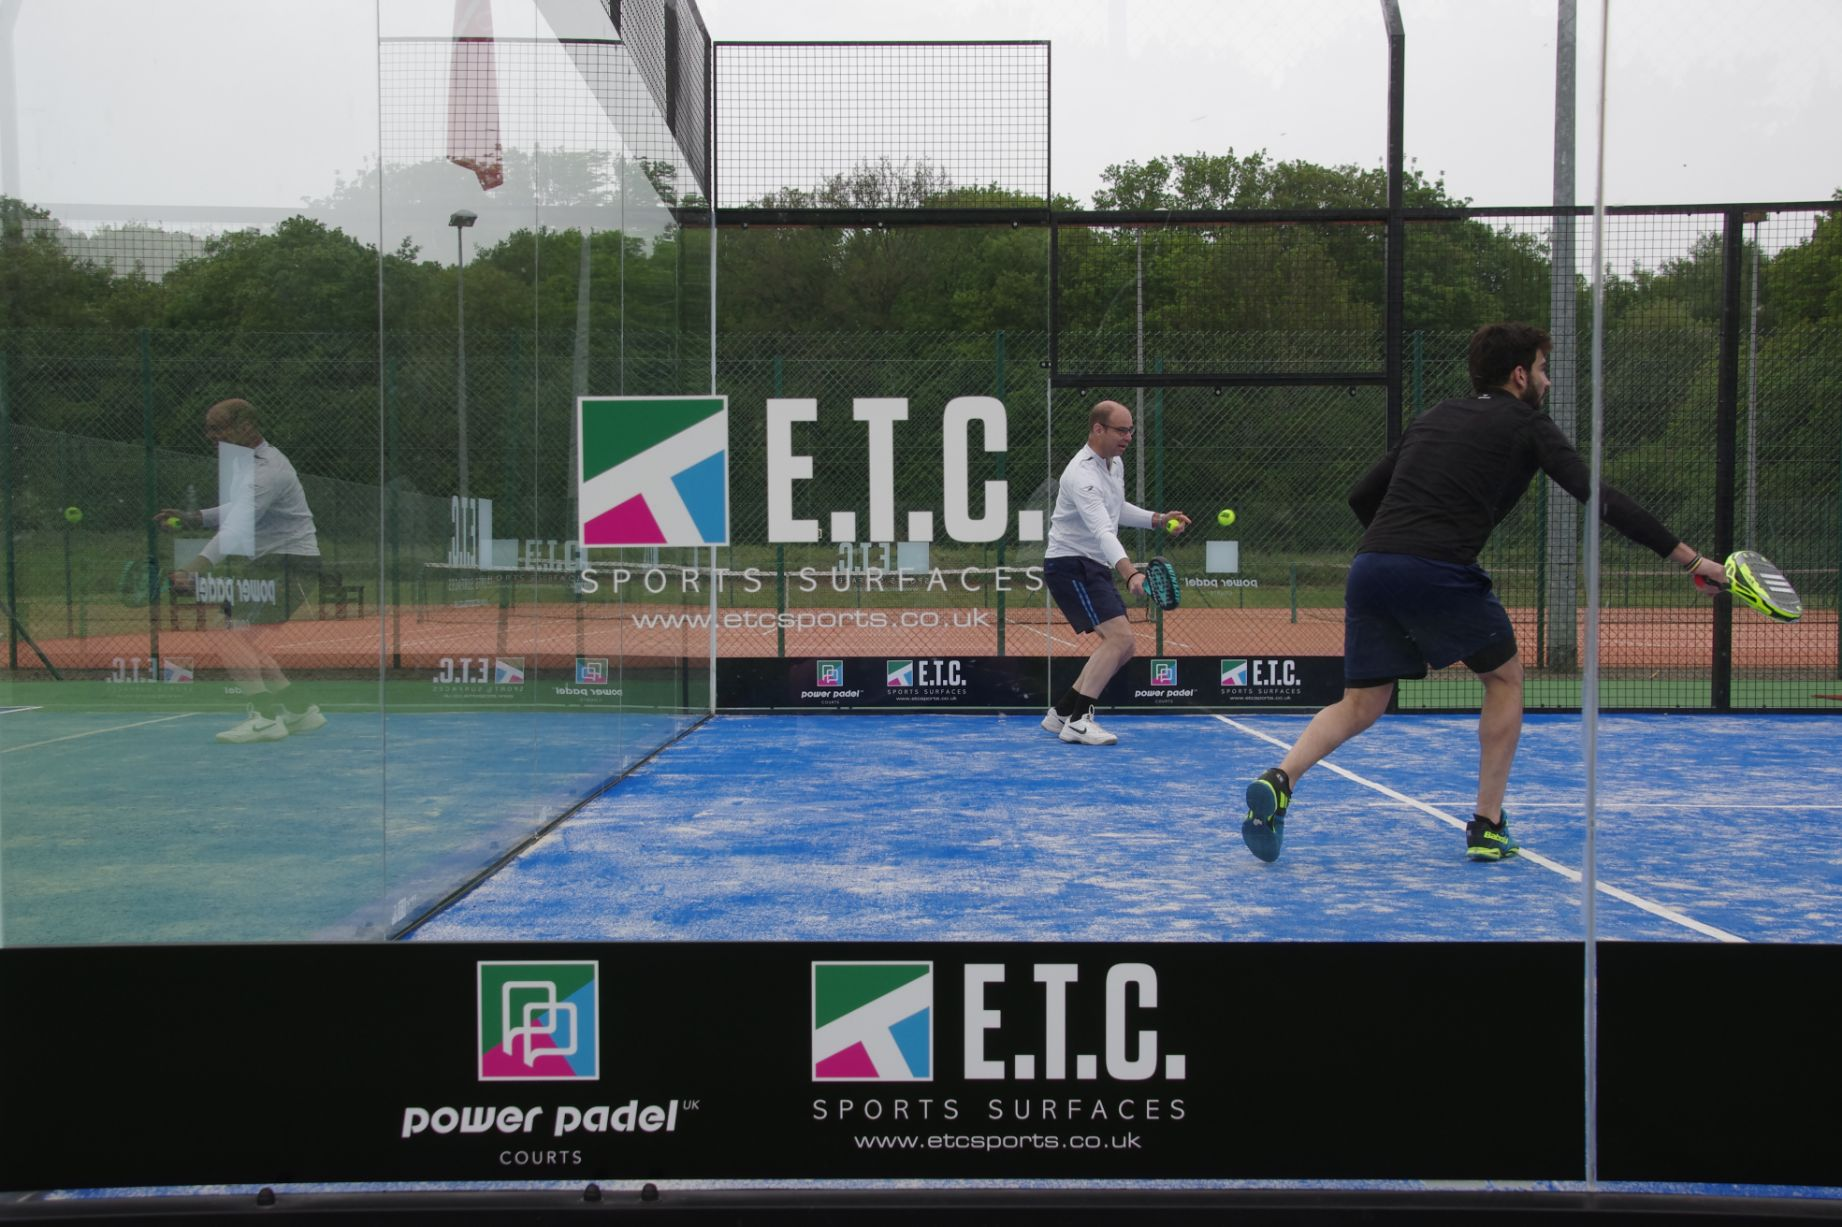 ETC Sports Surfaces are the only padel court suppliers offering Power Padel, a unique moveable, storable padel court system.